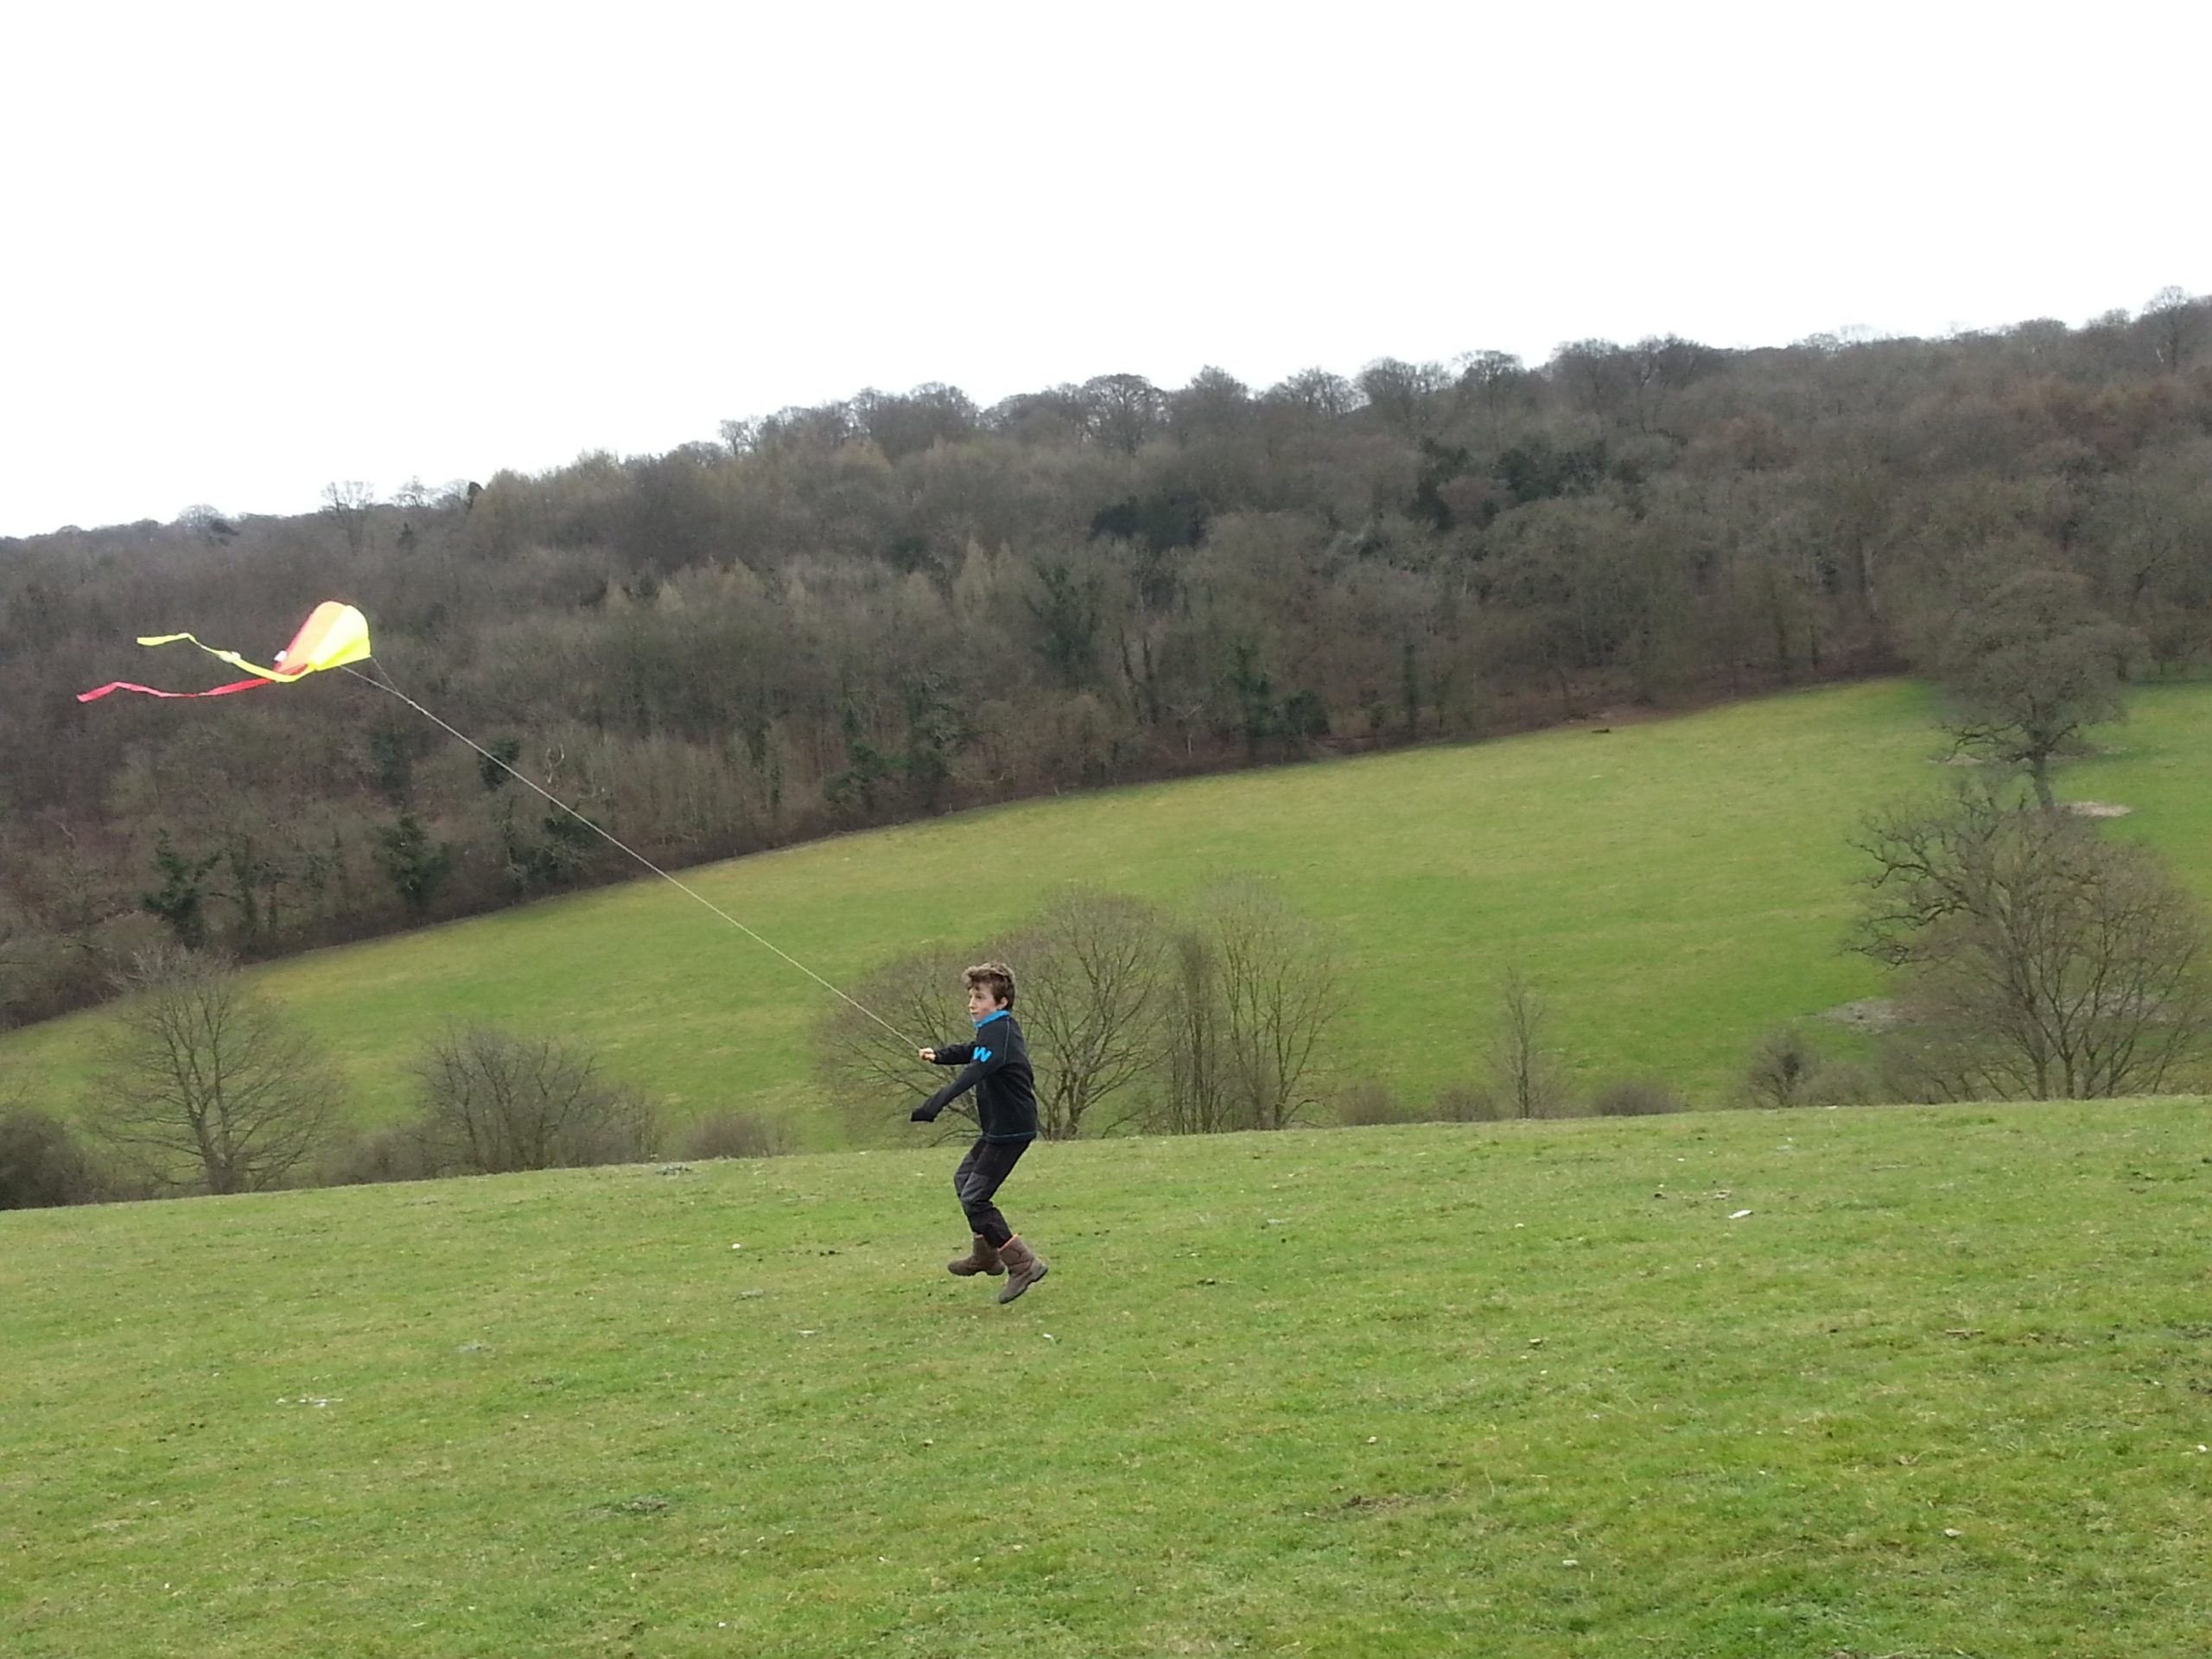 kite flying Polesden Lacey